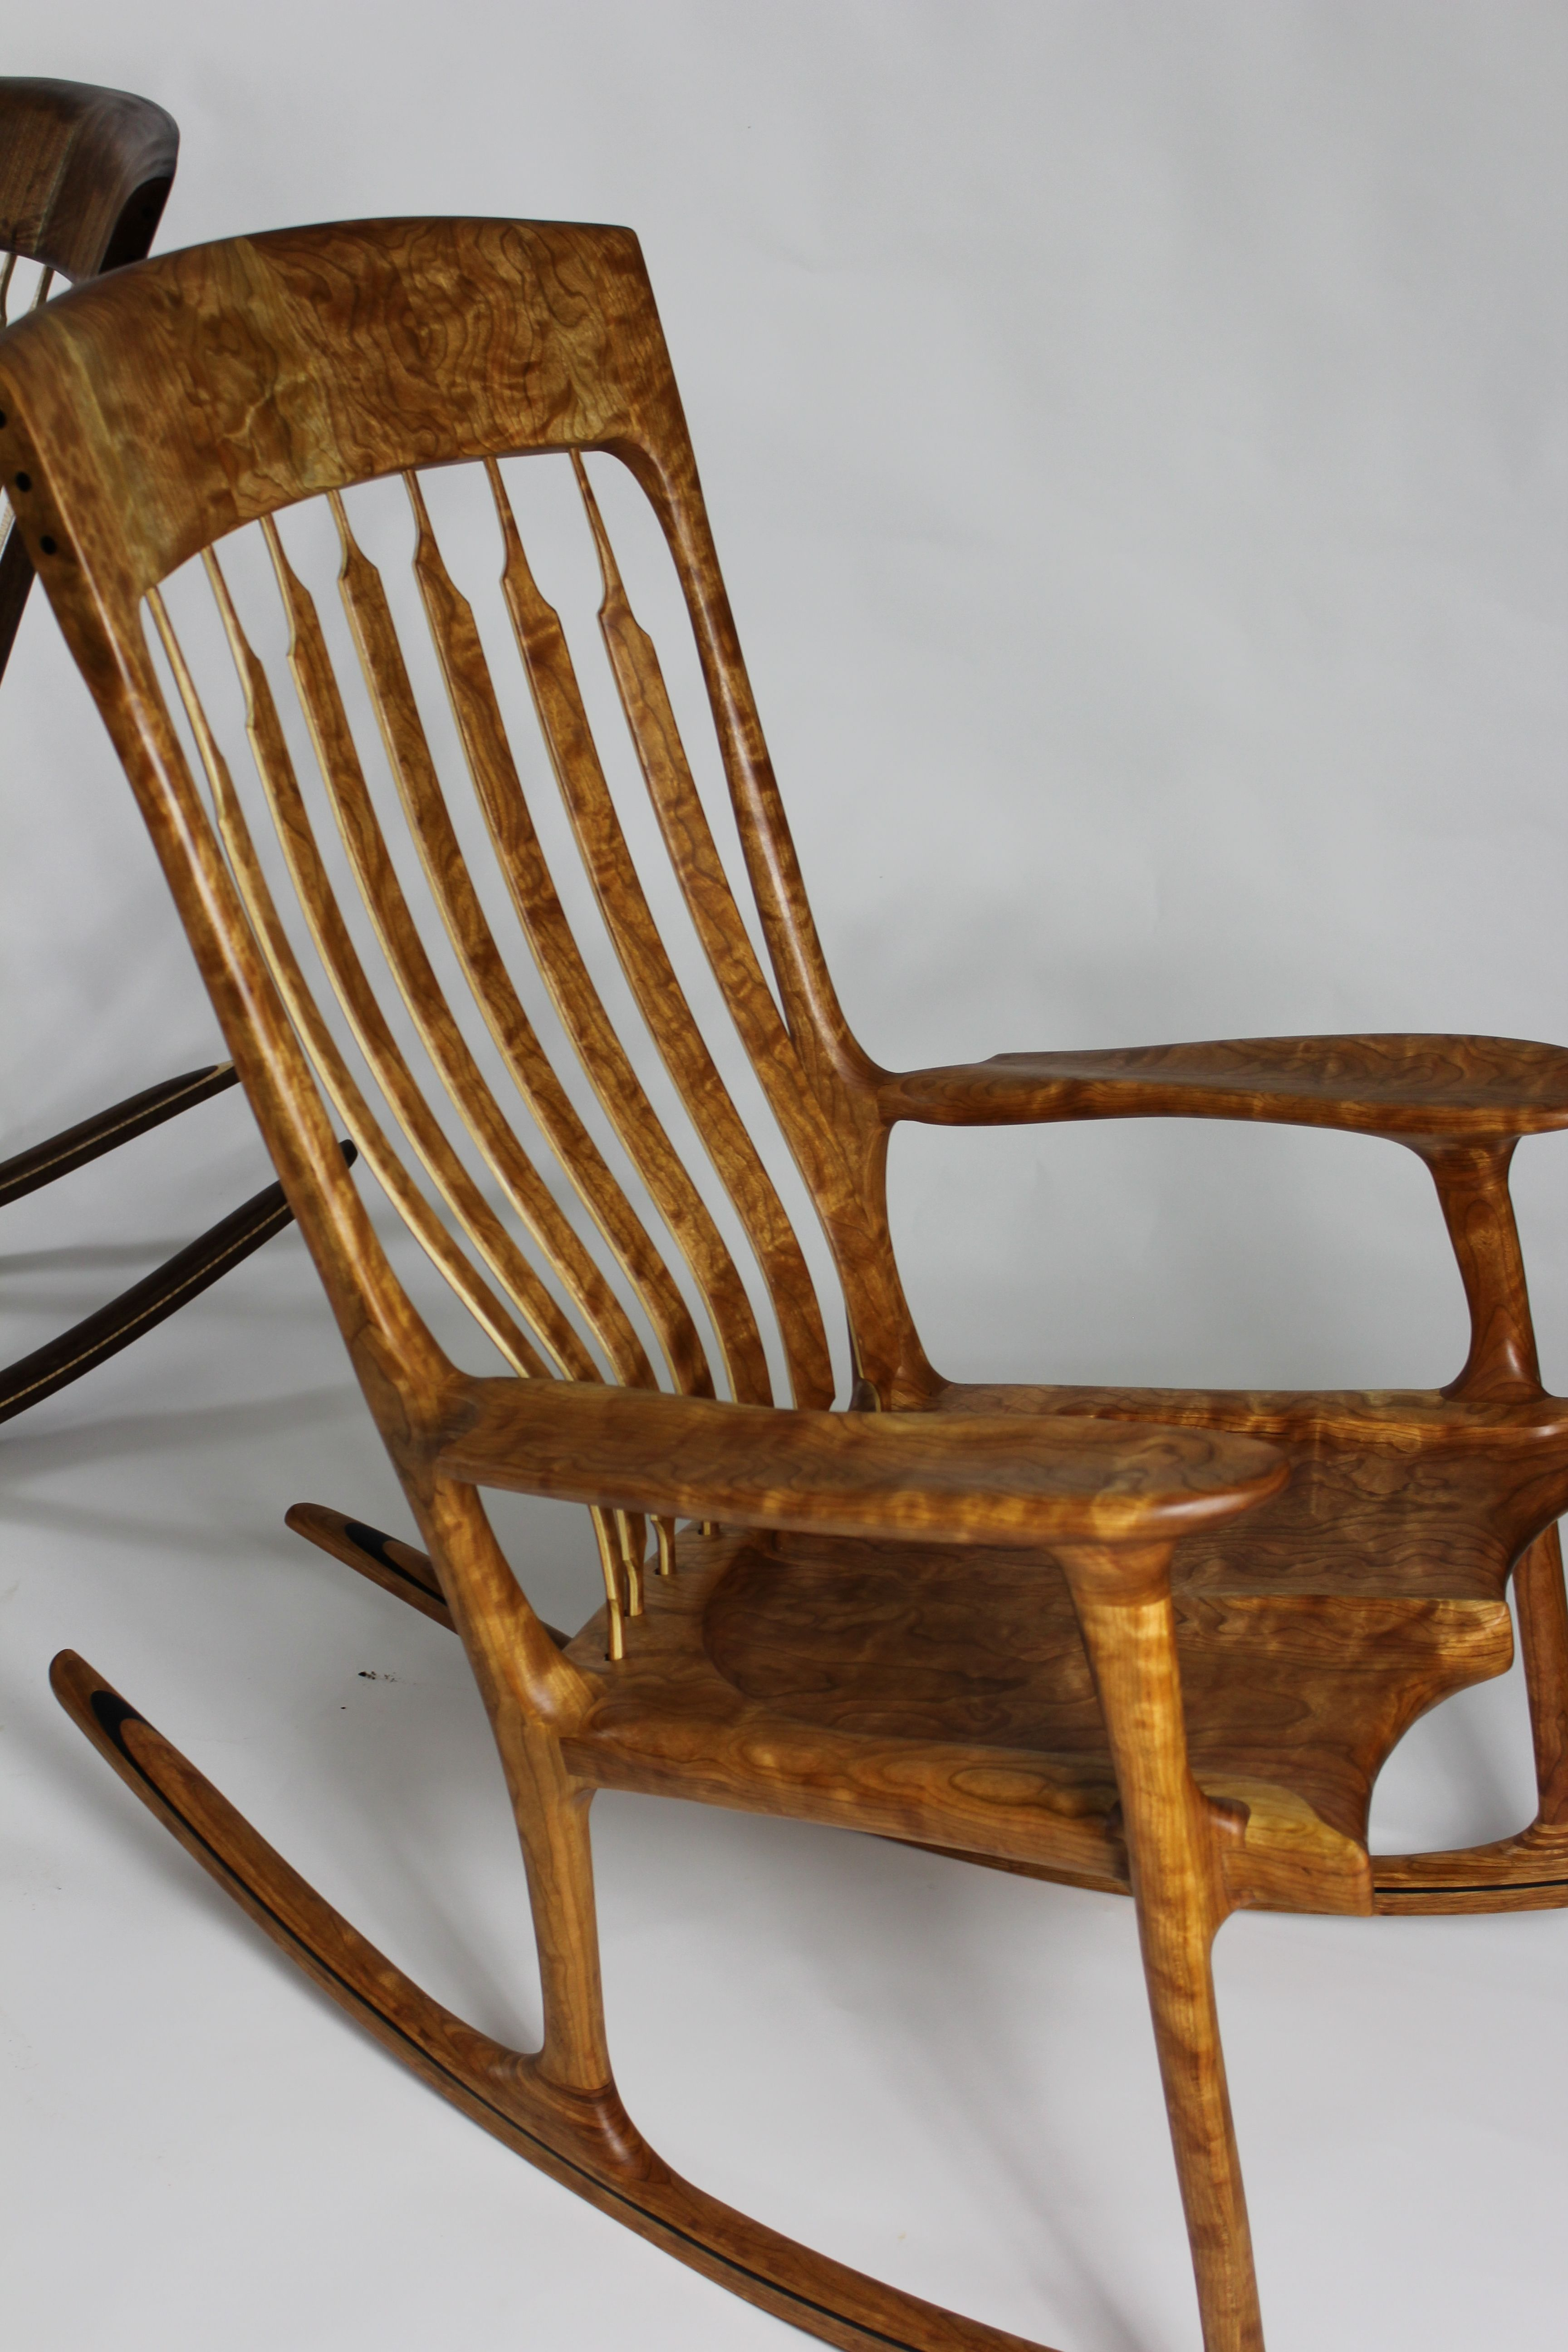 Rocking Chair Fine Woodworking Swivel Red Curly Cherry Ebony Rocker Jose A Berenguer Artist